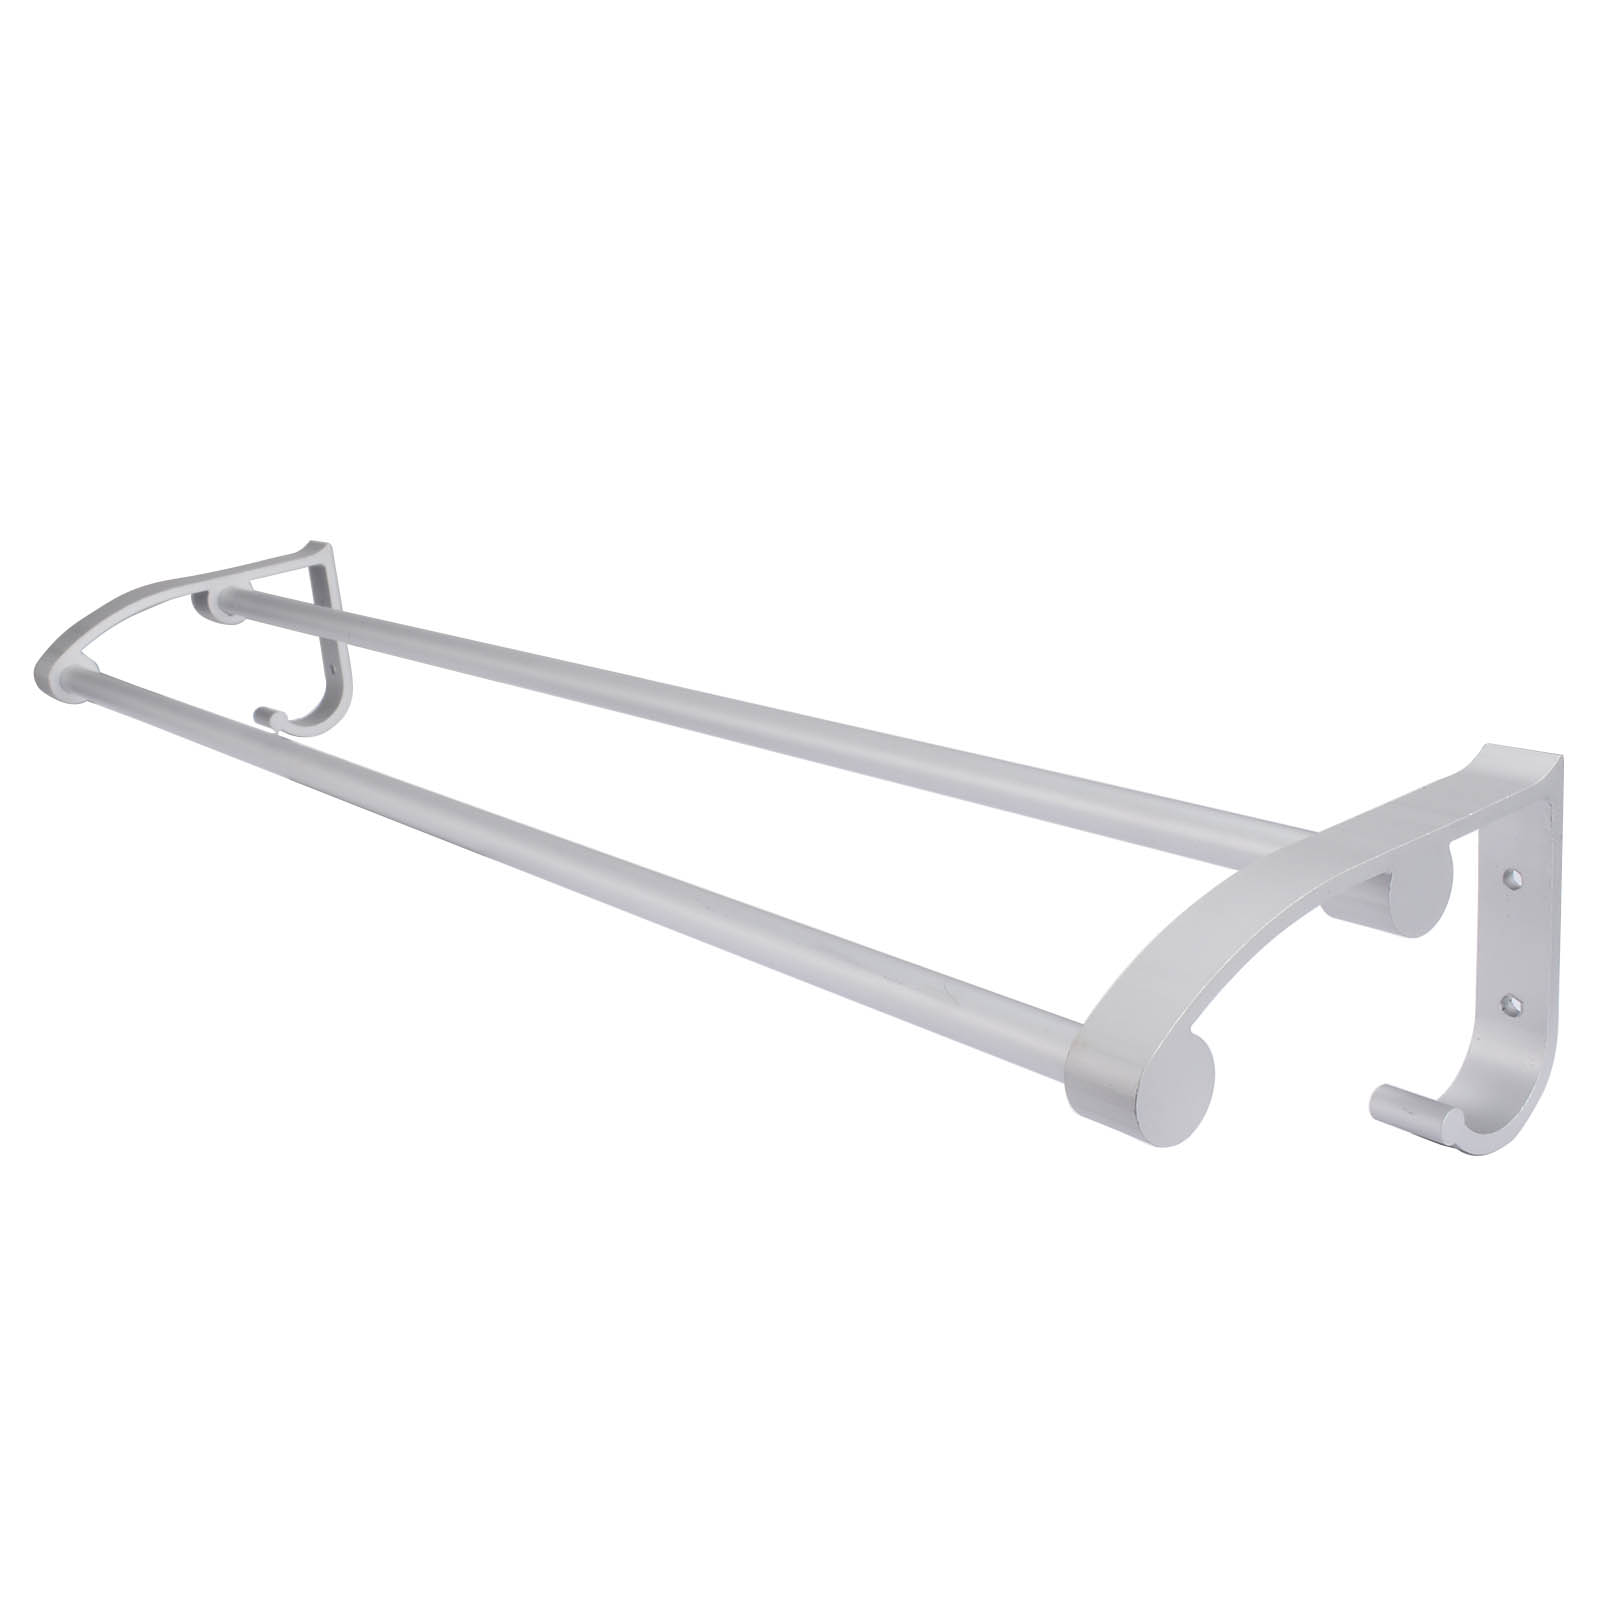 Mayitr Alloy Double Wall Mounted Towel Shelf Bathroom Towel Rail Rack Holder Hook For Bathroom Accessories nail free foldable antique brass bath towel rack active bathroom towel holder double towel shelf with hooks bathroom accessories